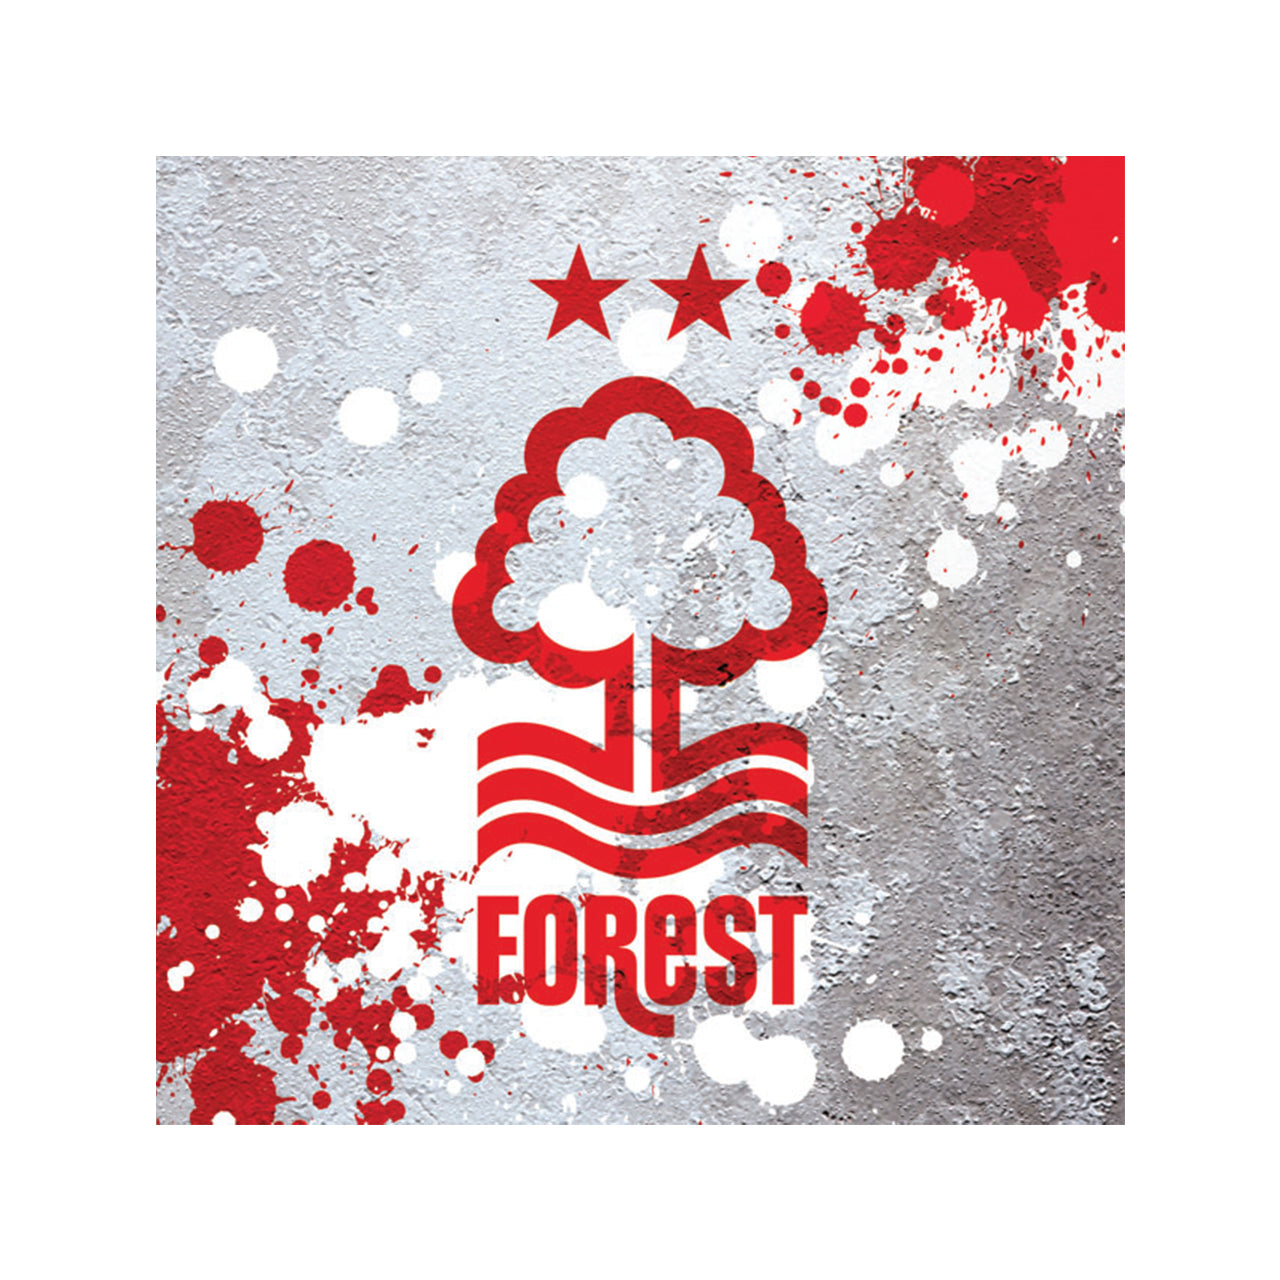 NFFC Crest With Splatter Background Card